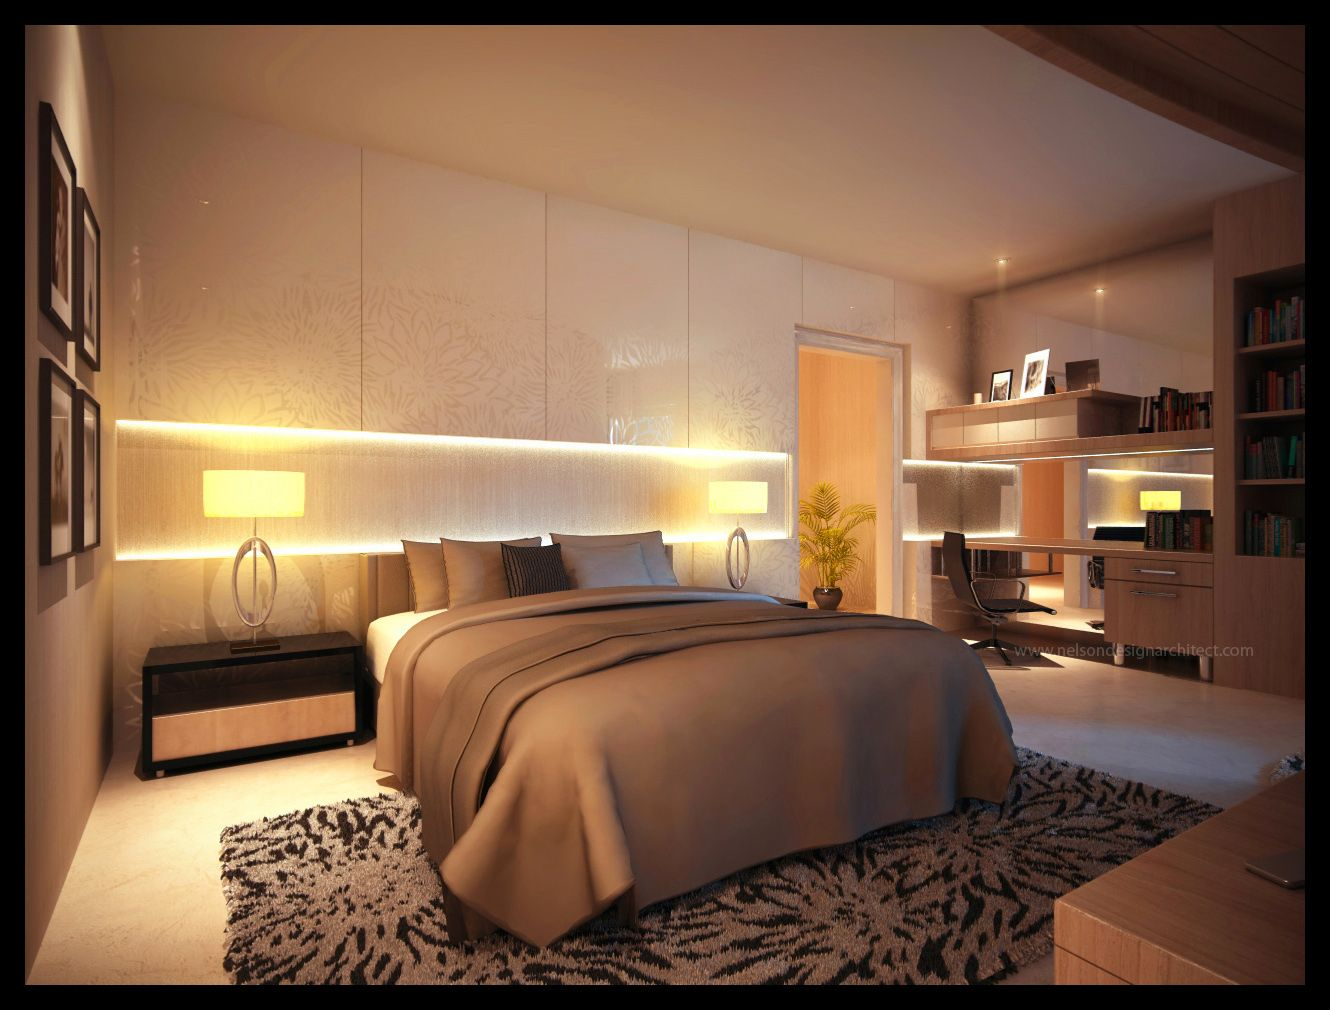 Captivating Wall Designs Boys Carldrogocom Bedroom Designs Minimalist Cream Cheap Cream Bedroom  Ideas, Gallery Wall Designs Boys Carldrogocom Bedroom Designs Minimalist ... Part 10